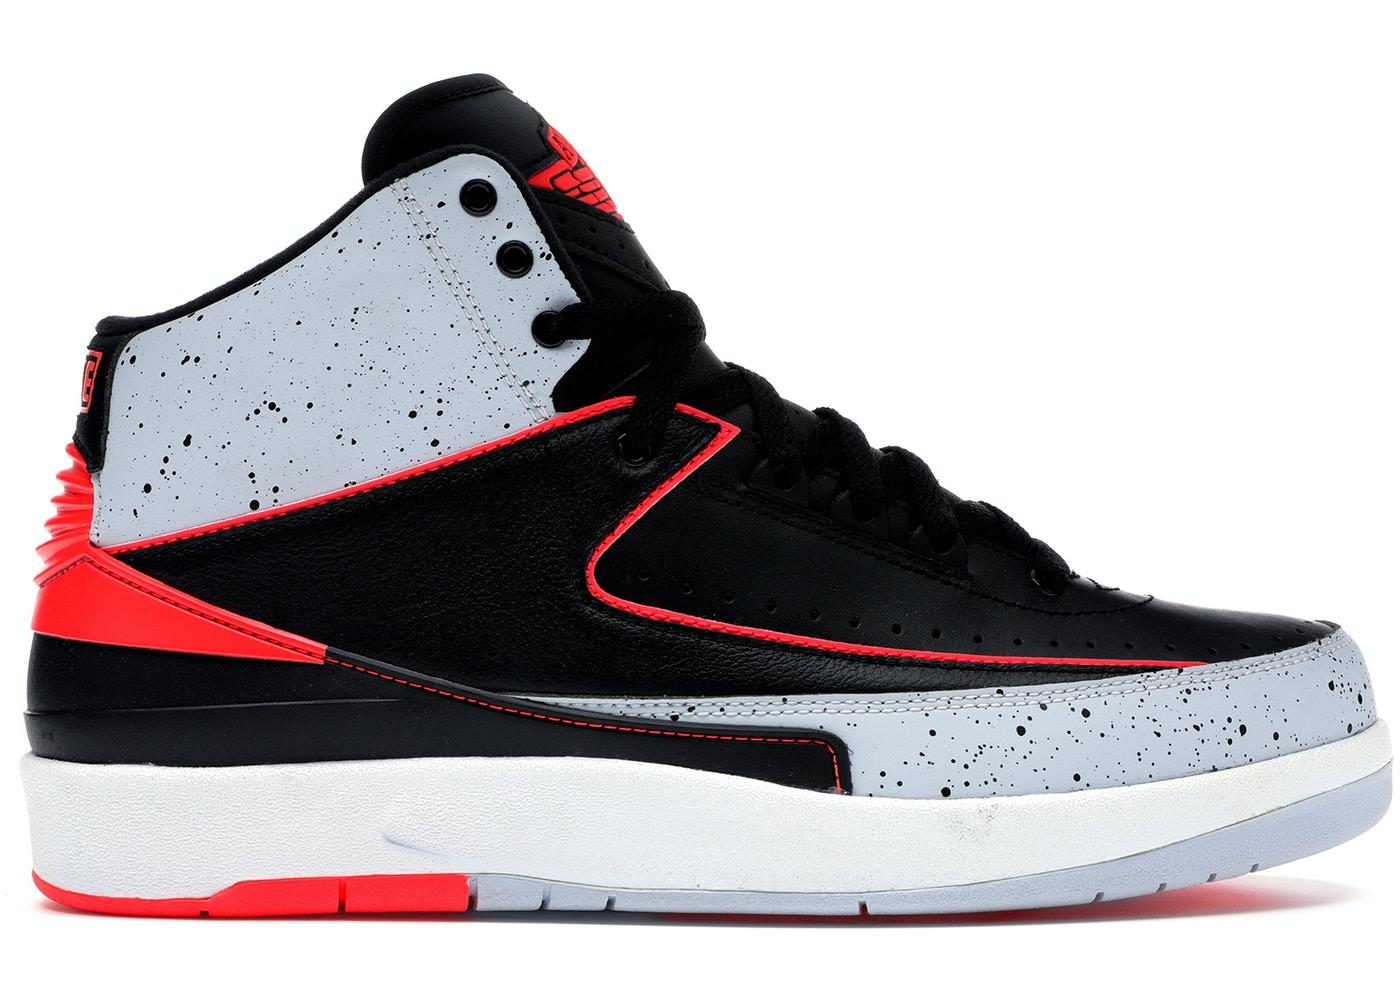 new products 76c9c 650bf Buy Air Jordan 2 Shoes & Deadstock Sneakers